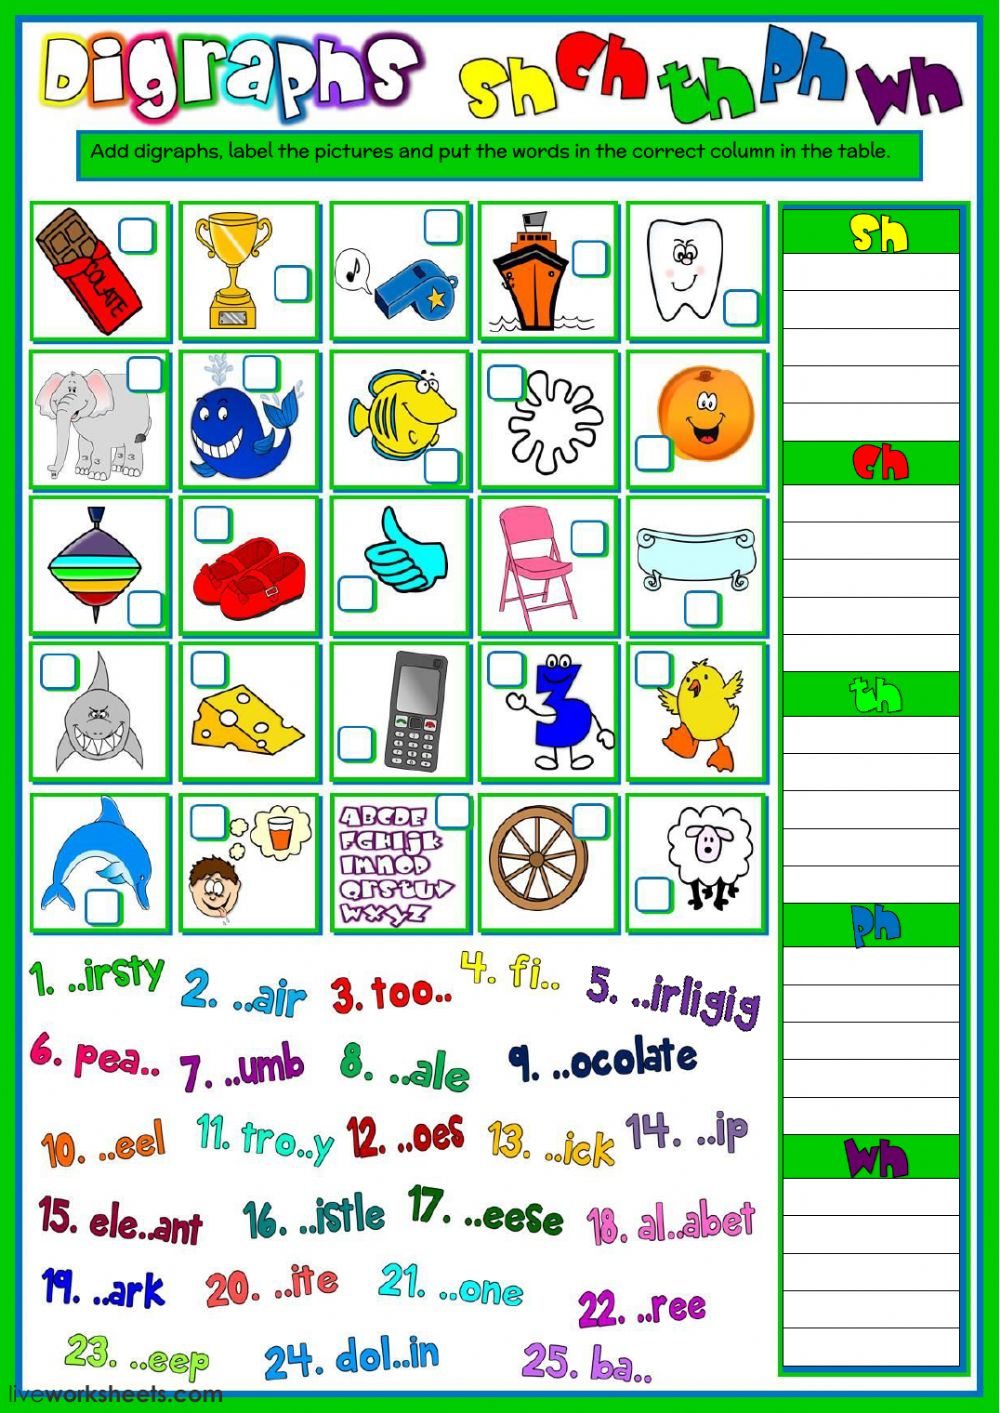 Digraphs Sh Ch Th Ph And Wh Interactive Worksheet